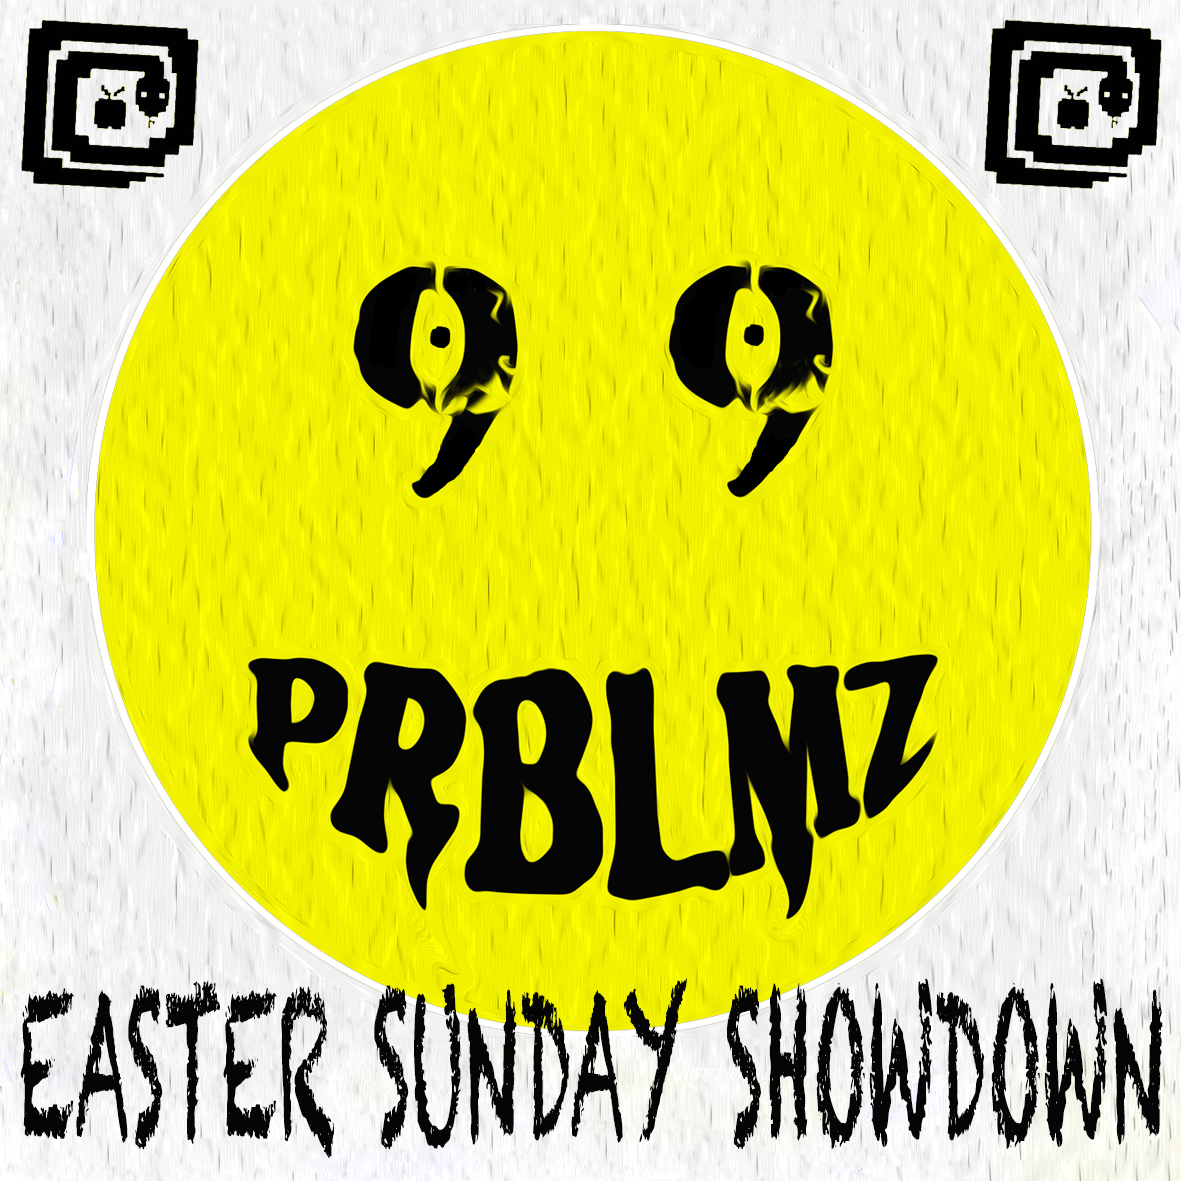 99 PRBLMZ EASTER SUNDAY SHOWDOWN (SUCKMUSIC PAGE)